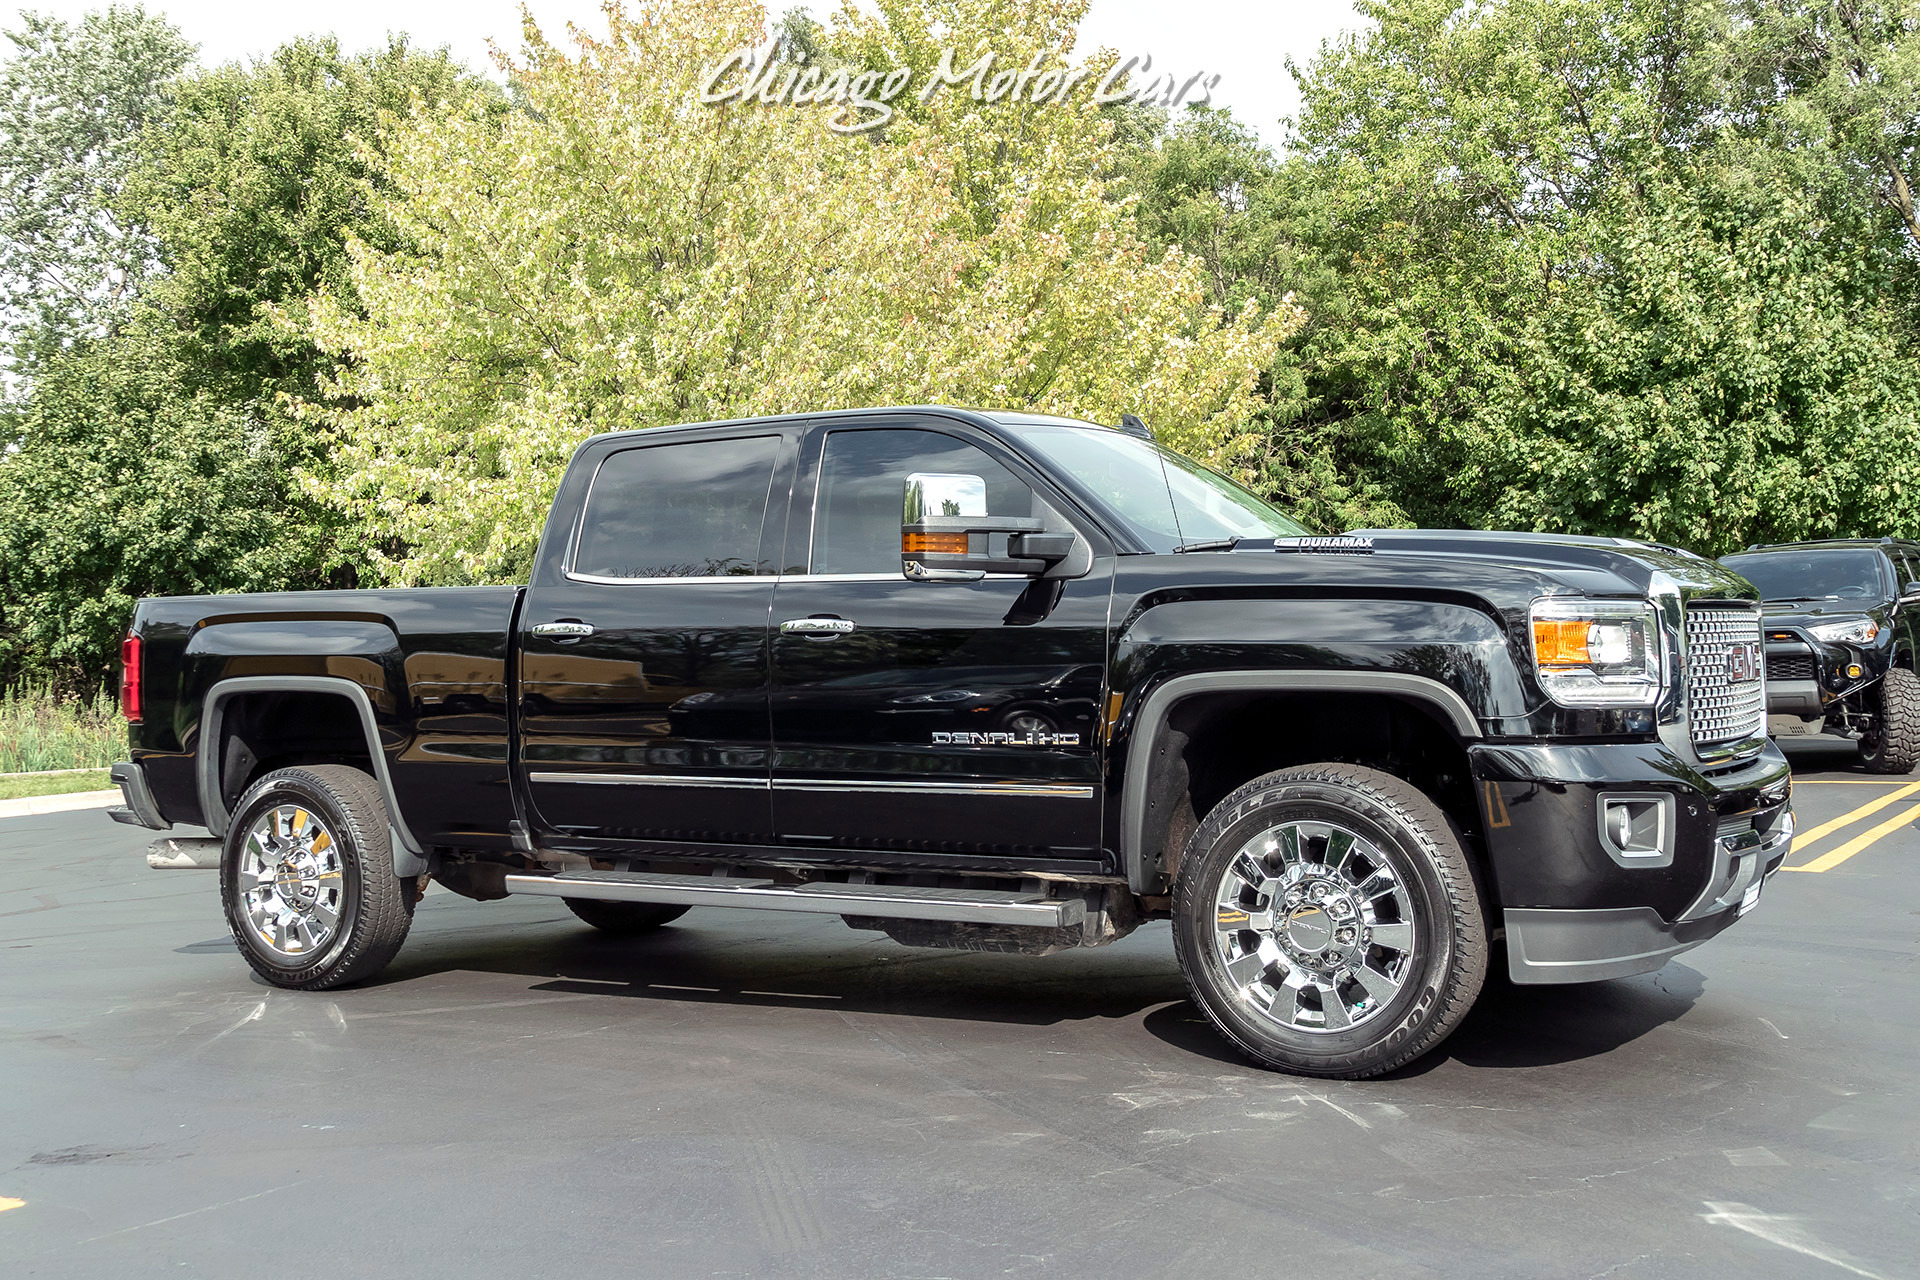 2017 Duramax Price >> Used 2017 Gmc Sierra 2500hd Denali Duramax Diesel 4x4 For